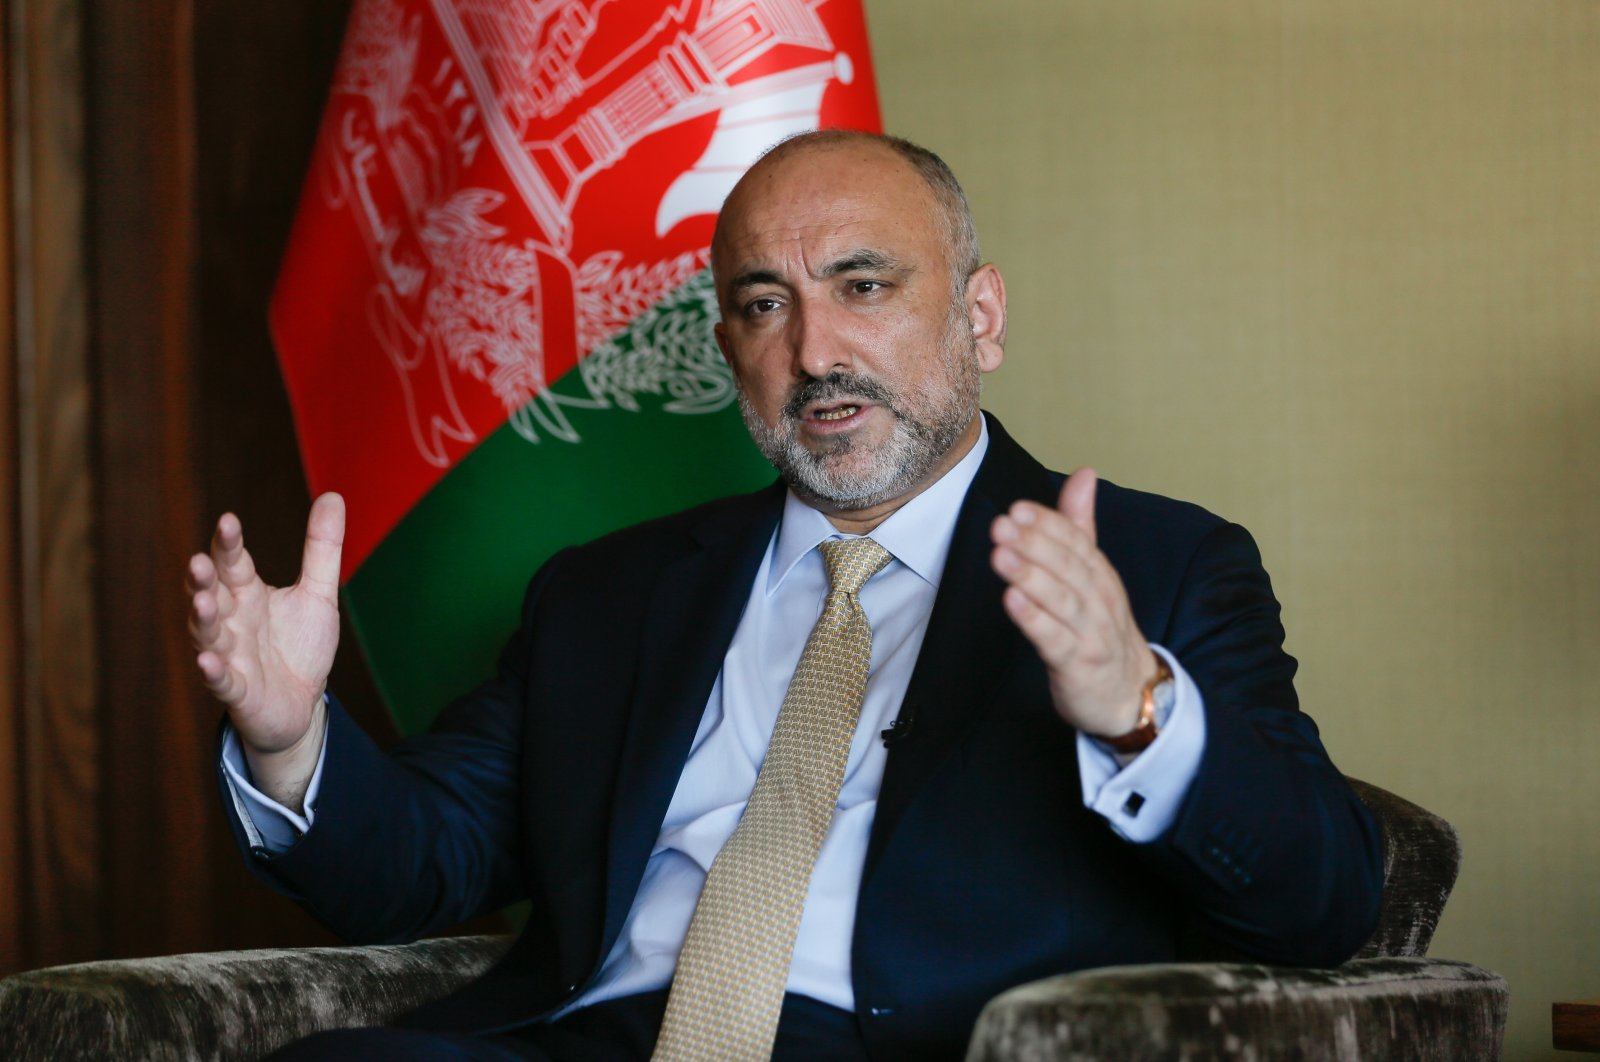 Afghan Foreign Minister Haneef Atmar gestures during an interview with Anadolu Agency (AA) in Antalya, Turkey, June 20, 2021. (AA Photo)